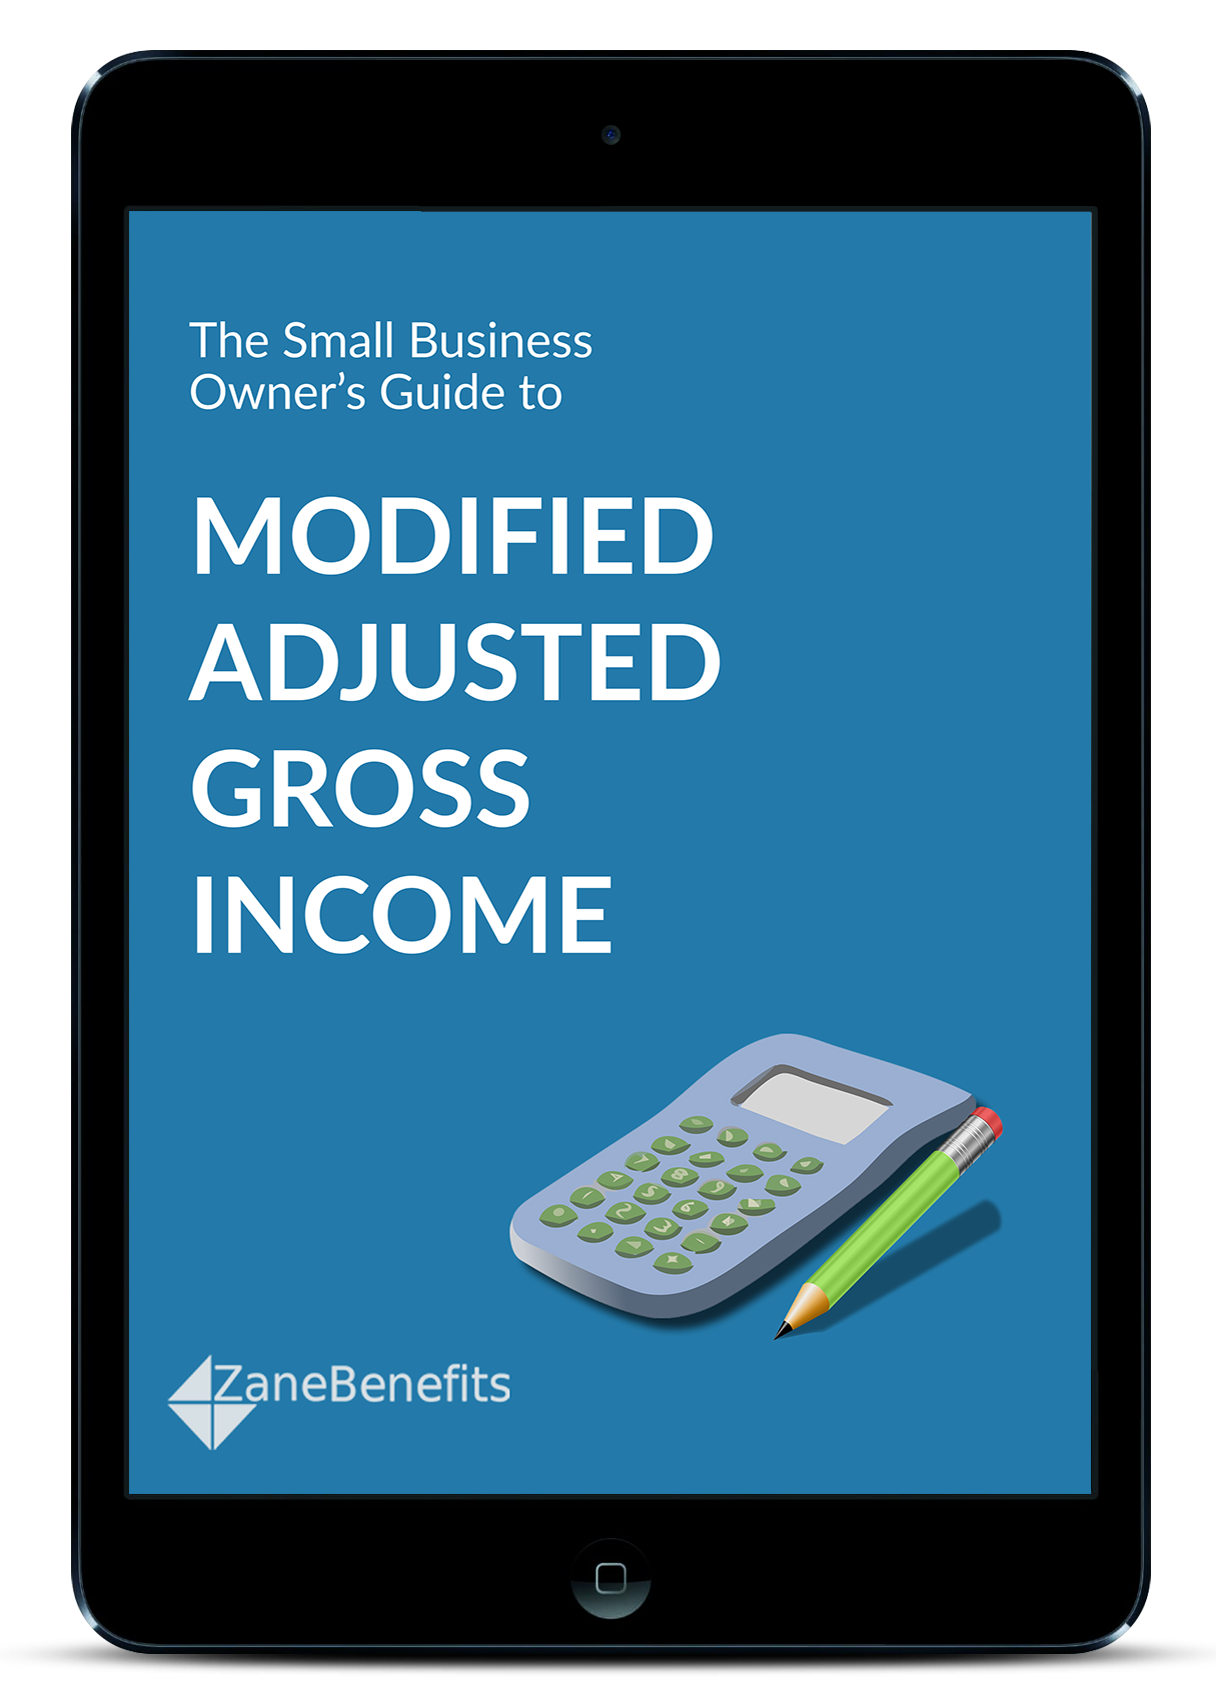 The Small Business Owner's Guide to Modified Adjusted Gross Income